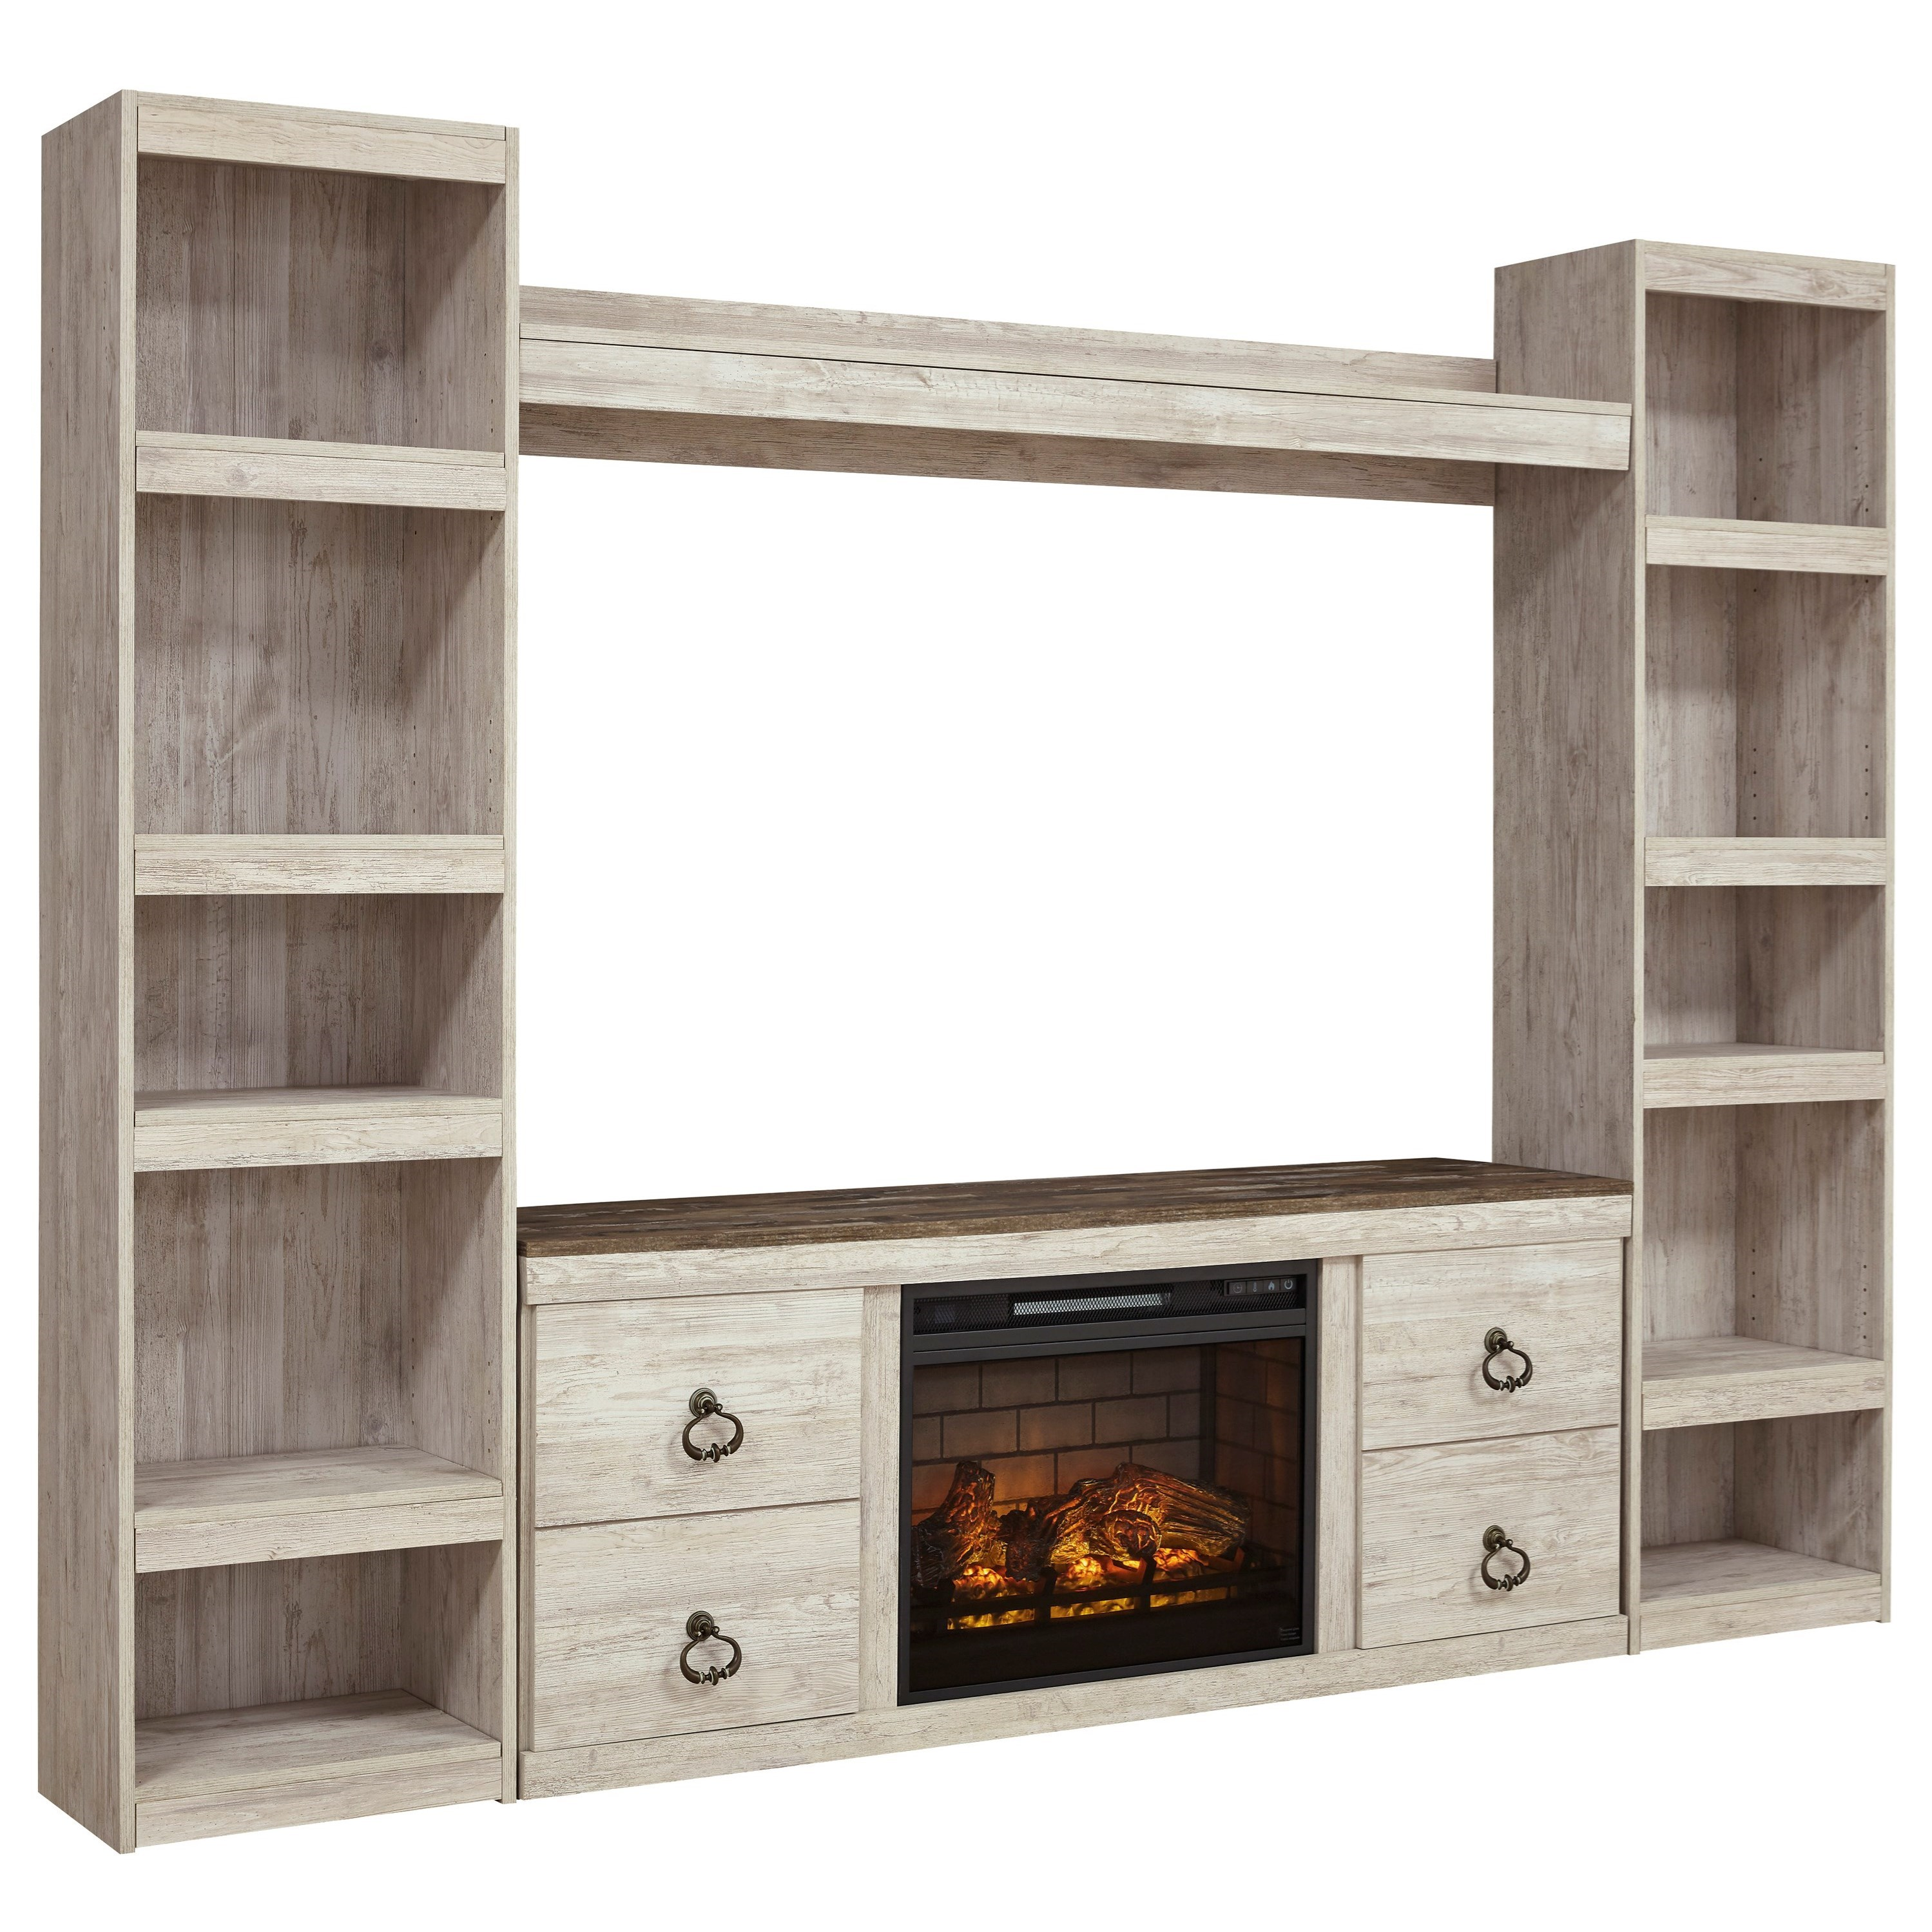 Willowton Entertainment Wall Unit by Signature Design by Ashley at Smart Buy Furniture